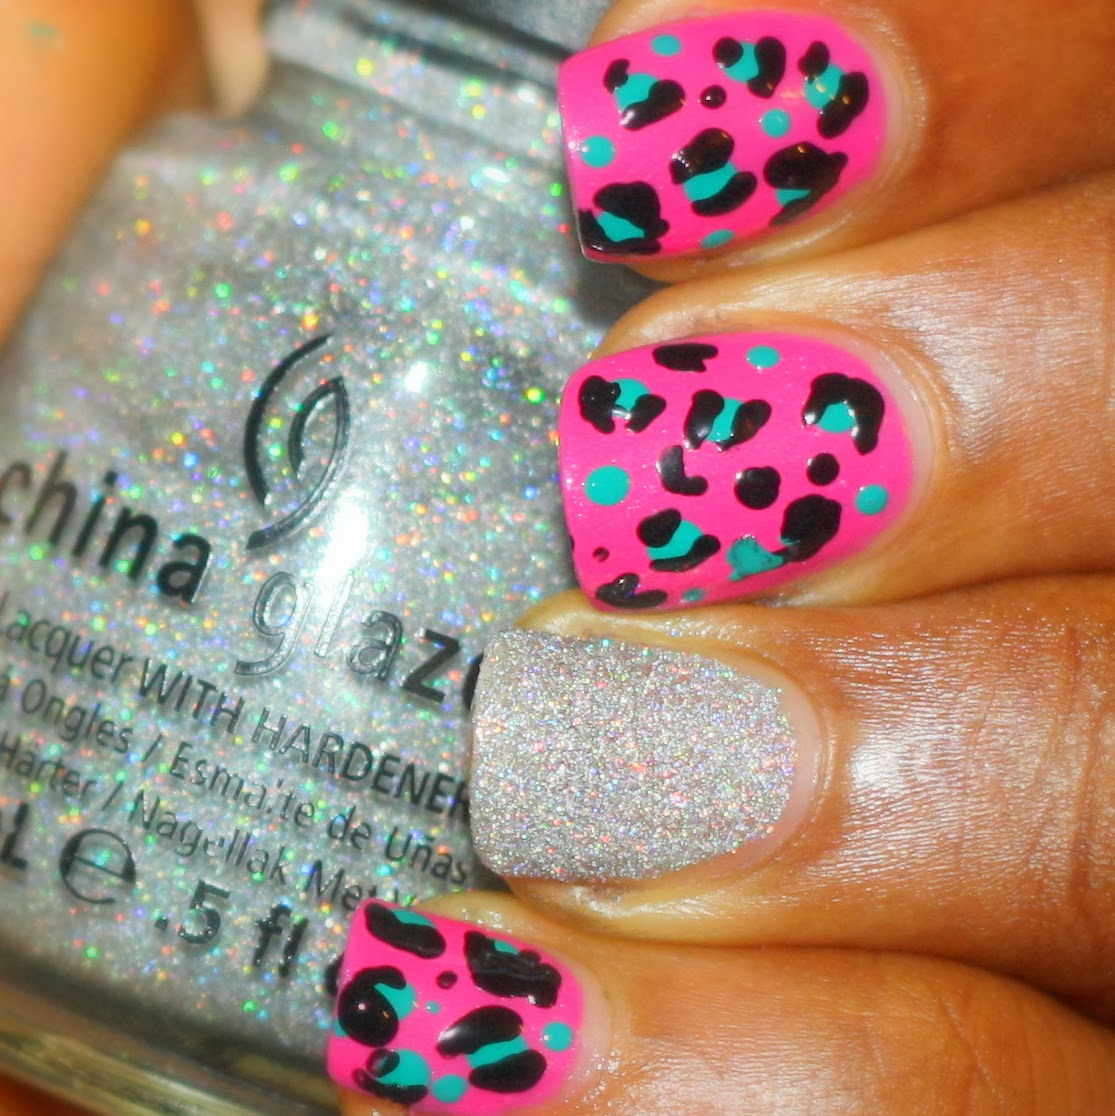 The Do It Yourself Lady: Colorful Leopard Print Nail Art